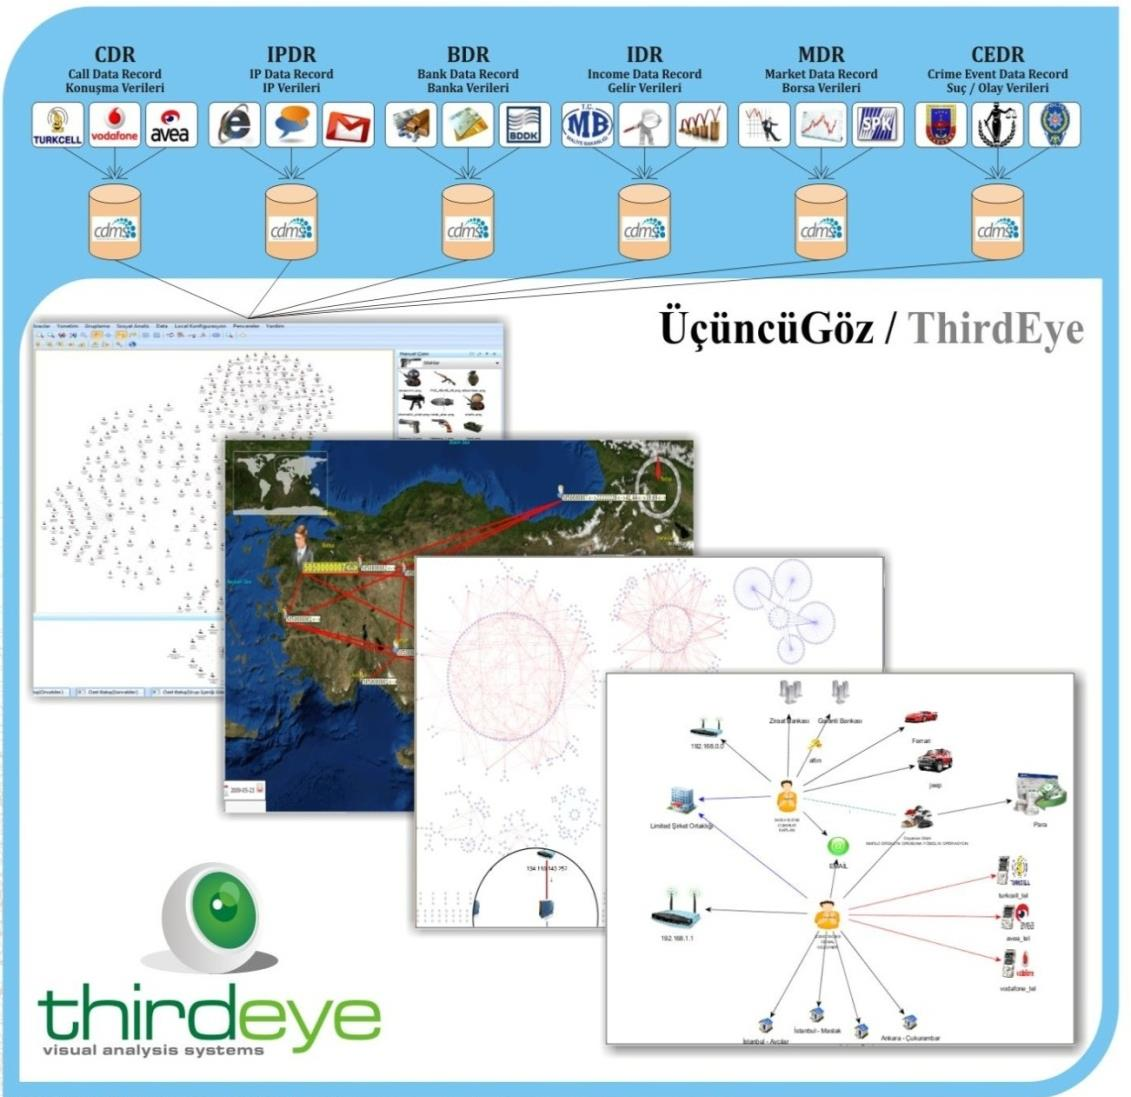 Thirdeye Visual Analysis System CDR Call Data Record IPDR IP Data Record BDR Bank